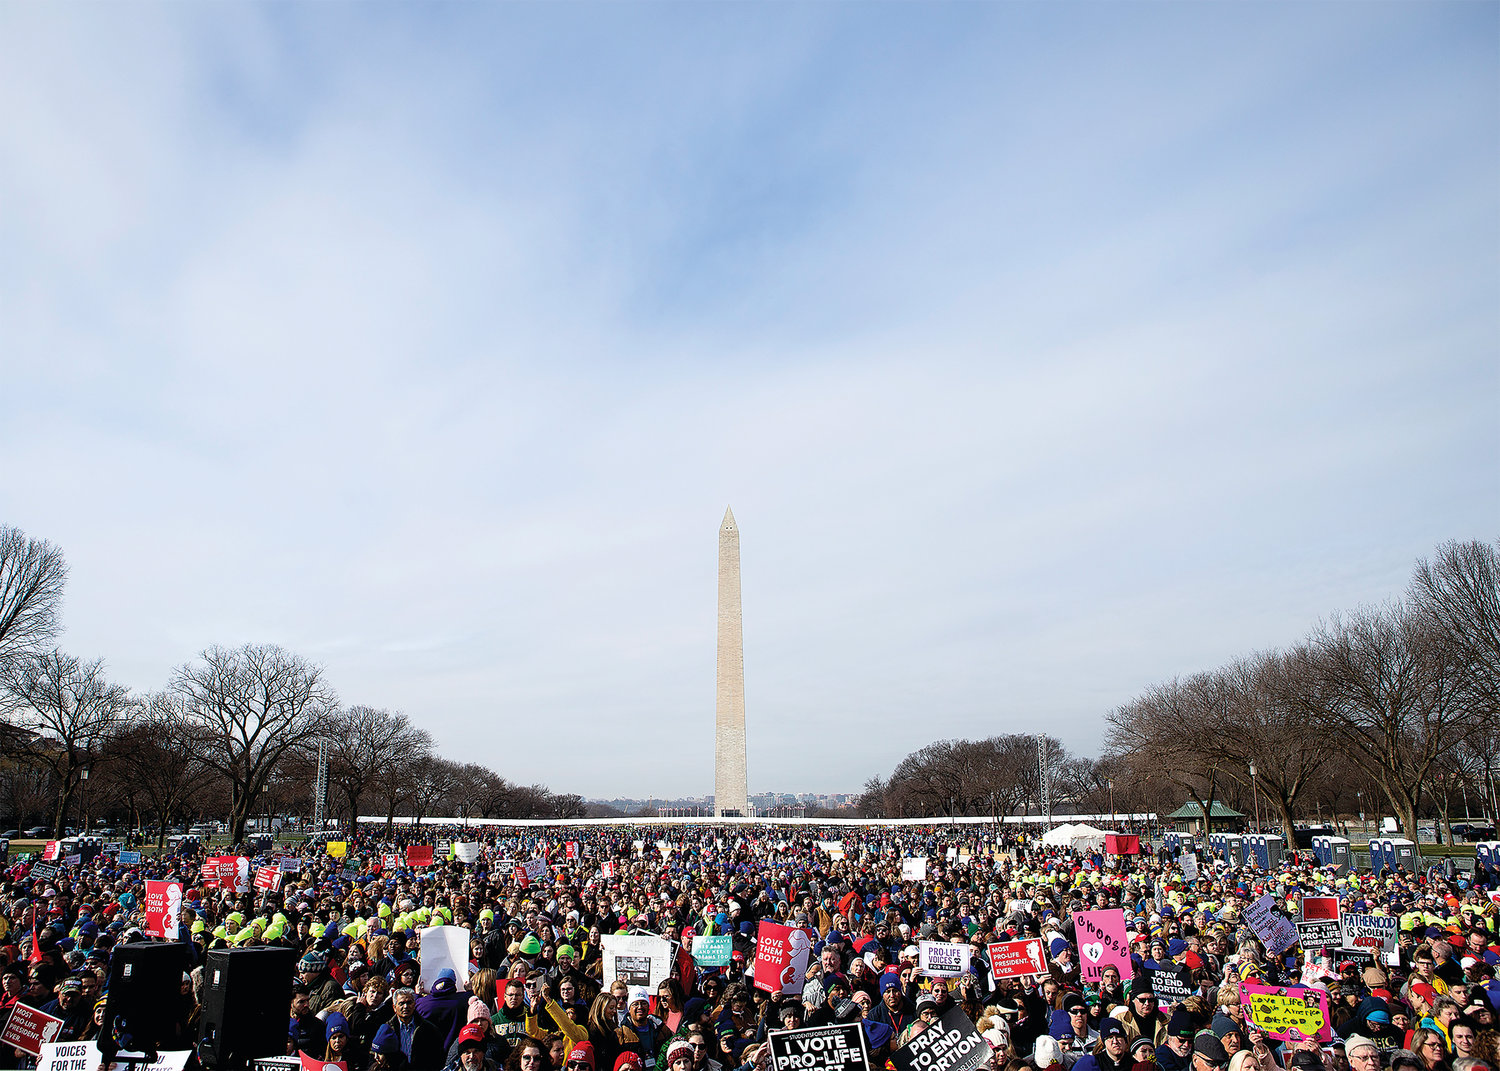 People gather during the annual March for Life rally in Washington Jan. 24, 2020. (CNS photo/Tyler Orsburn) See stories marked LIFE- Jan. 23 and 24, 2020.